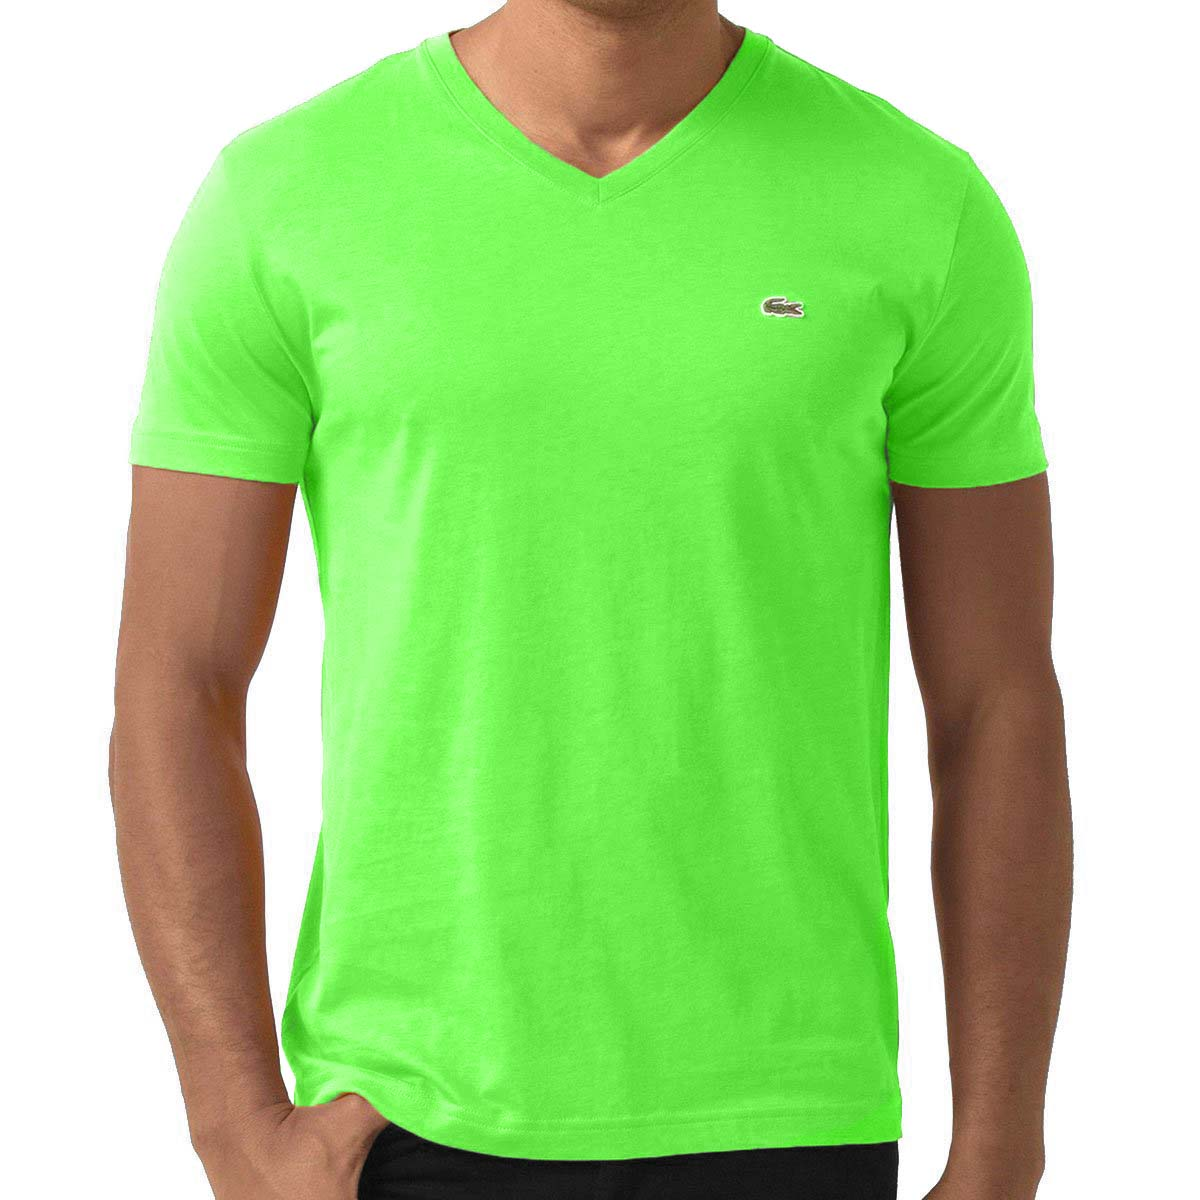 lacoste mens short sleeve v neck pima cotton t shirt